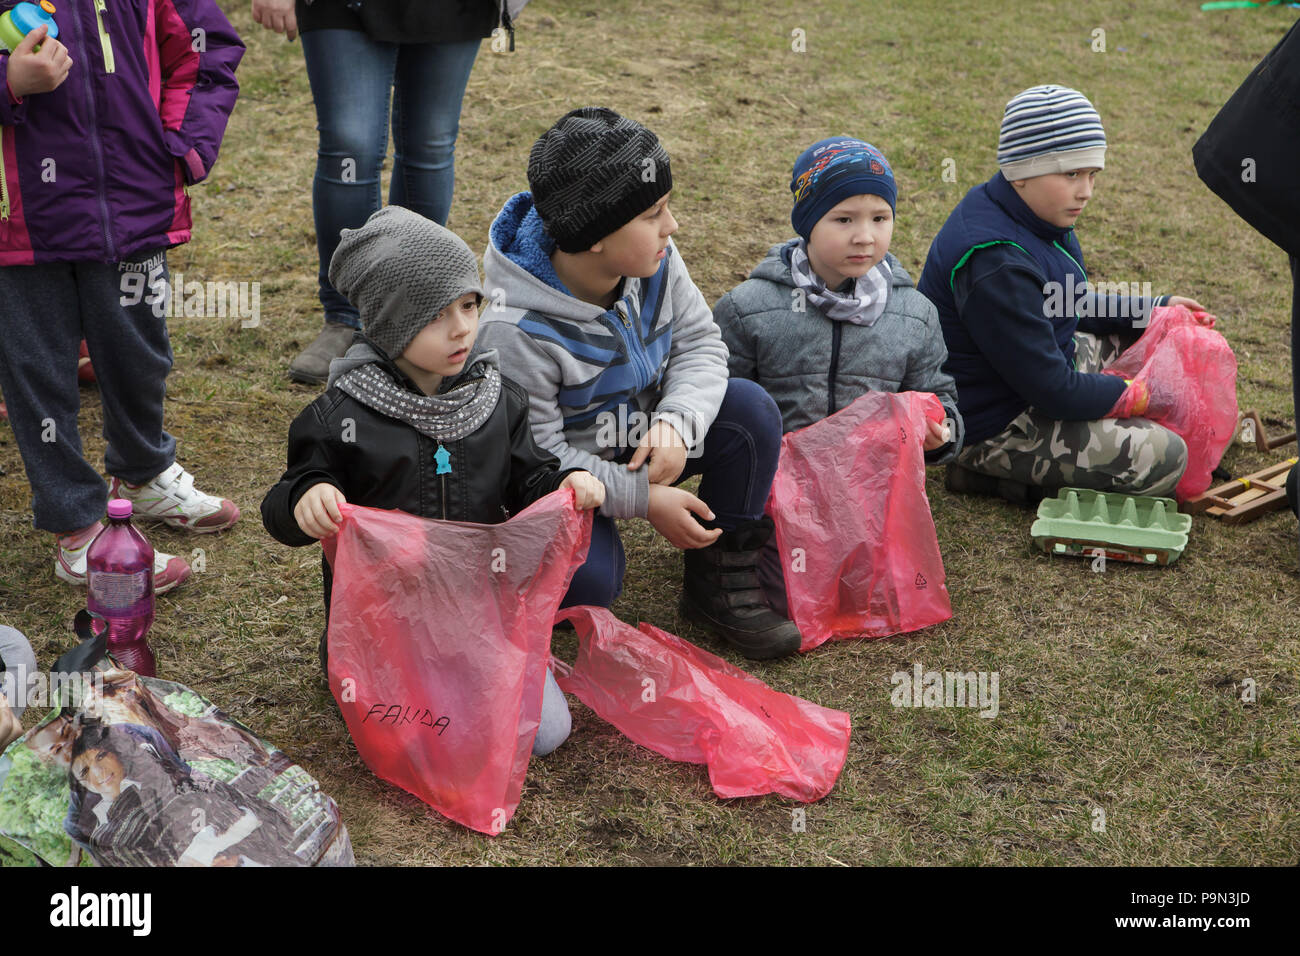 Traditional Easter procession known as Vodění Jidáše (Marching Judas) in the village of Stradouň in Pardubice Region, Czech Republic. Boys wait with empty plastic bags for their portions of sweets collected during the procession on 31 March 2018. Early in the morning on Holy Saturday, the eldest teenage boy in the village is dressed in a ridiculous straw suit. He is supposed to perform Judas Iscariot in this way. Wearing this obscure outfit, he has march through the village from house to house escorted by other boys, who twist wooden ratchets and sing a song about Judas, who betrayed his maste Stock Photo